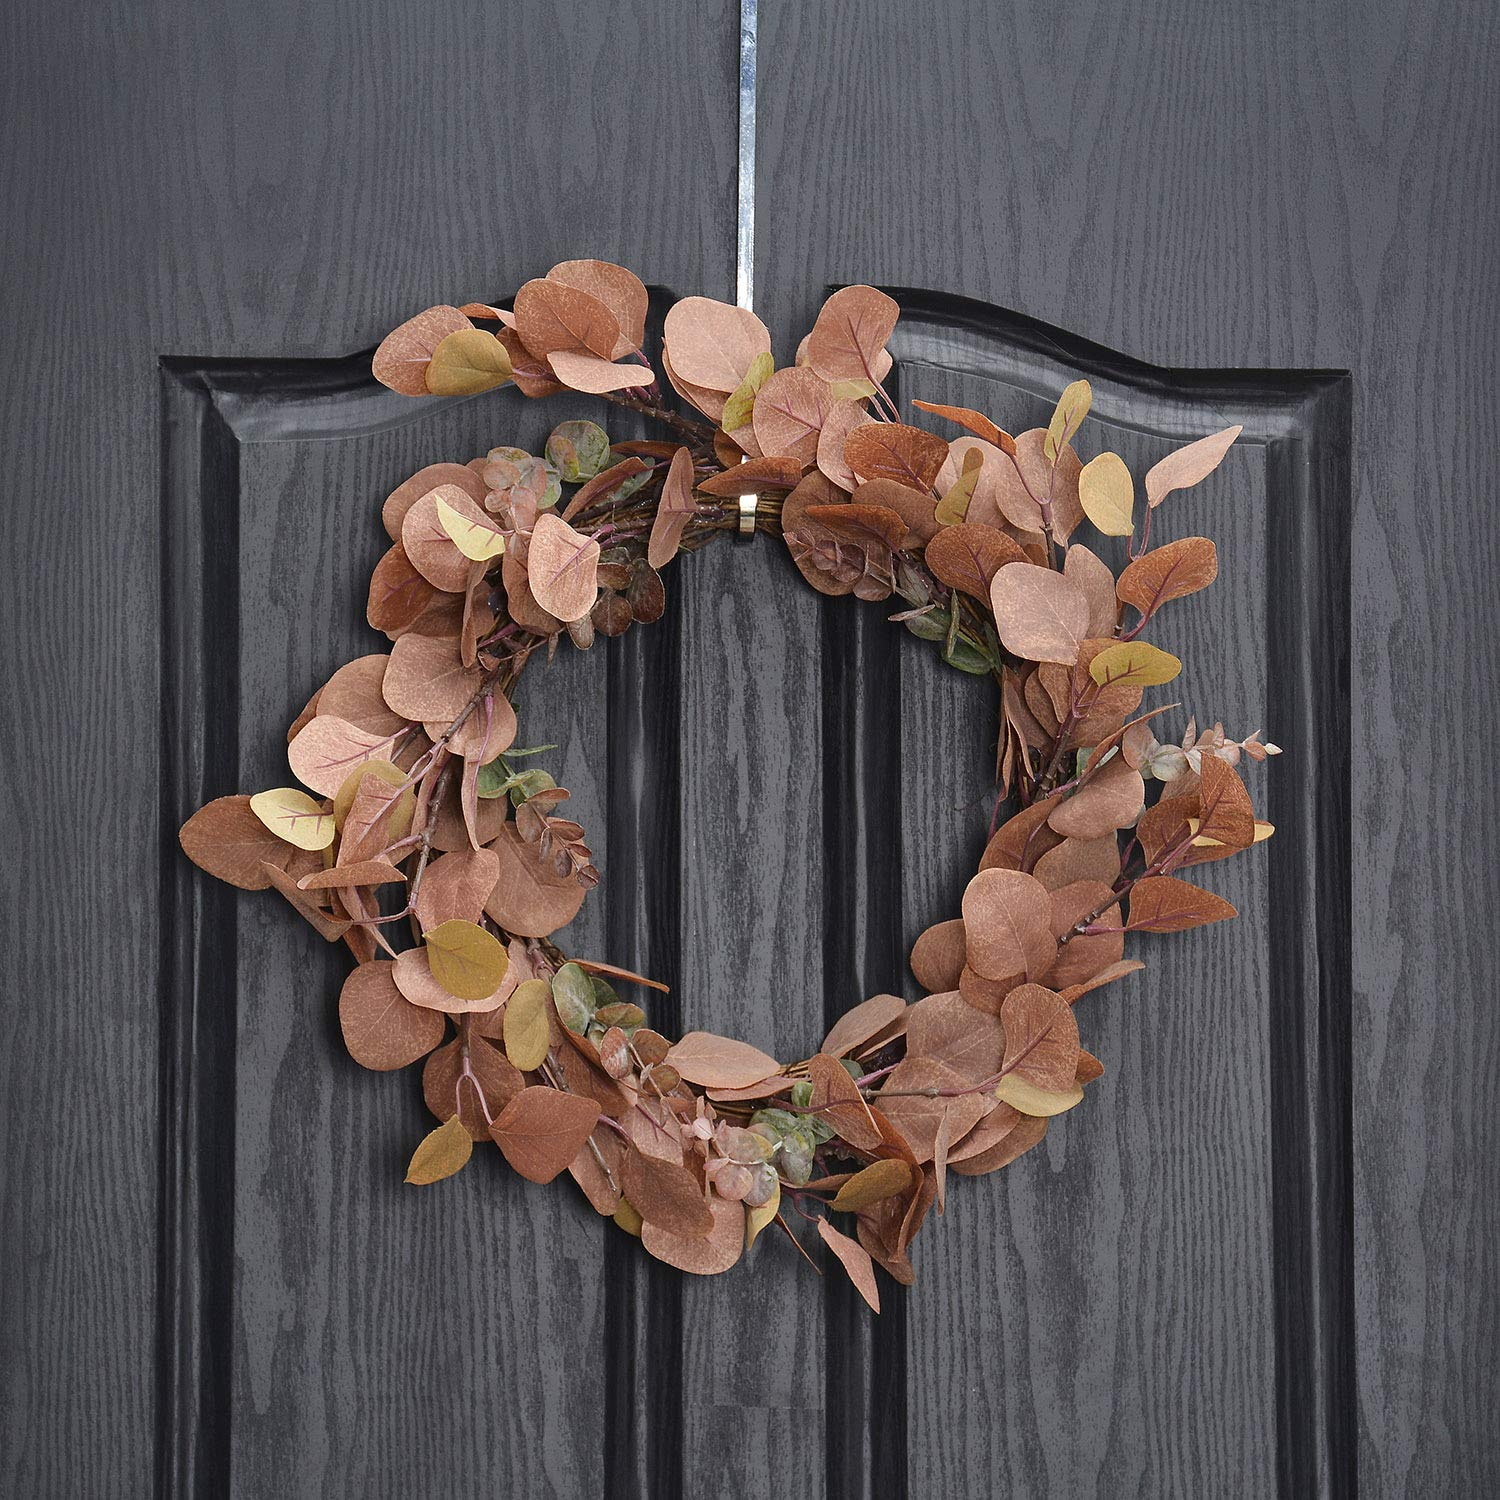 QUNWREATH Handmade Floral 14 inch Leaf Series,Fall Wreath,Wreath for Front Door,Rustic Wreath,Farmhouse Wreath,Grapevine Wreath,Light up Wreath,Everyday Wreath,QUNW13